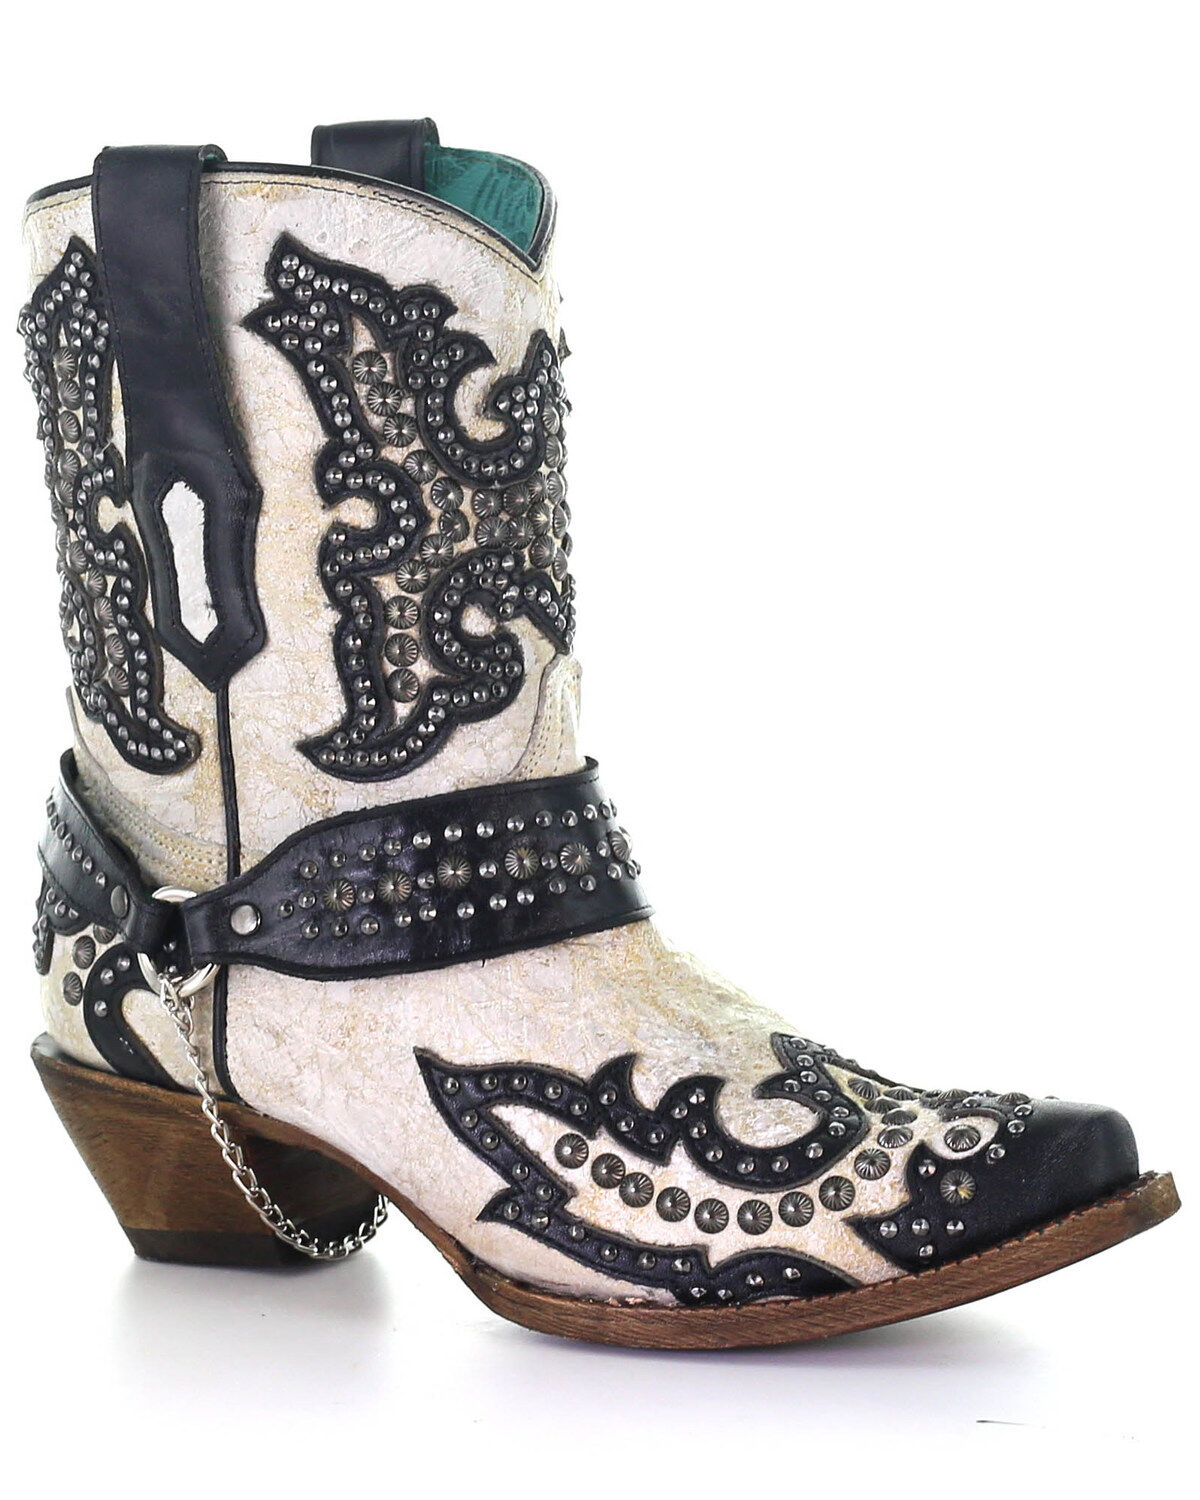 Sizes 5-12 B Corral Womens 13-inch White//Green Glitter Inlay /& Crystals Pull-On Cowboy Boots US, Bone 10.5 B M